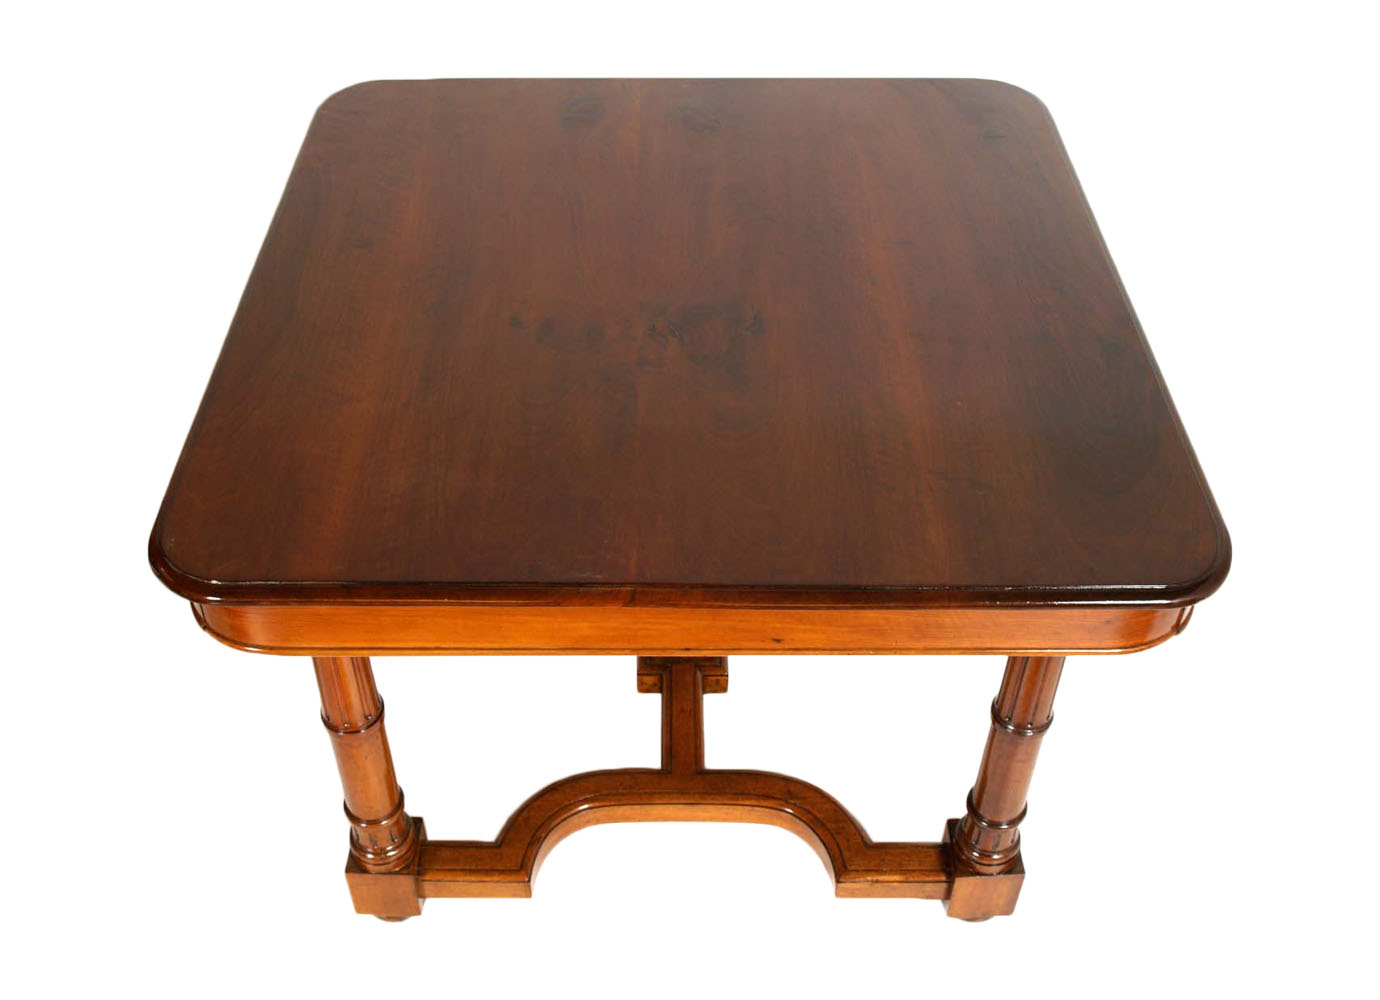 antique-extendable-table-neoclassic-solid-wood-MAM71-9